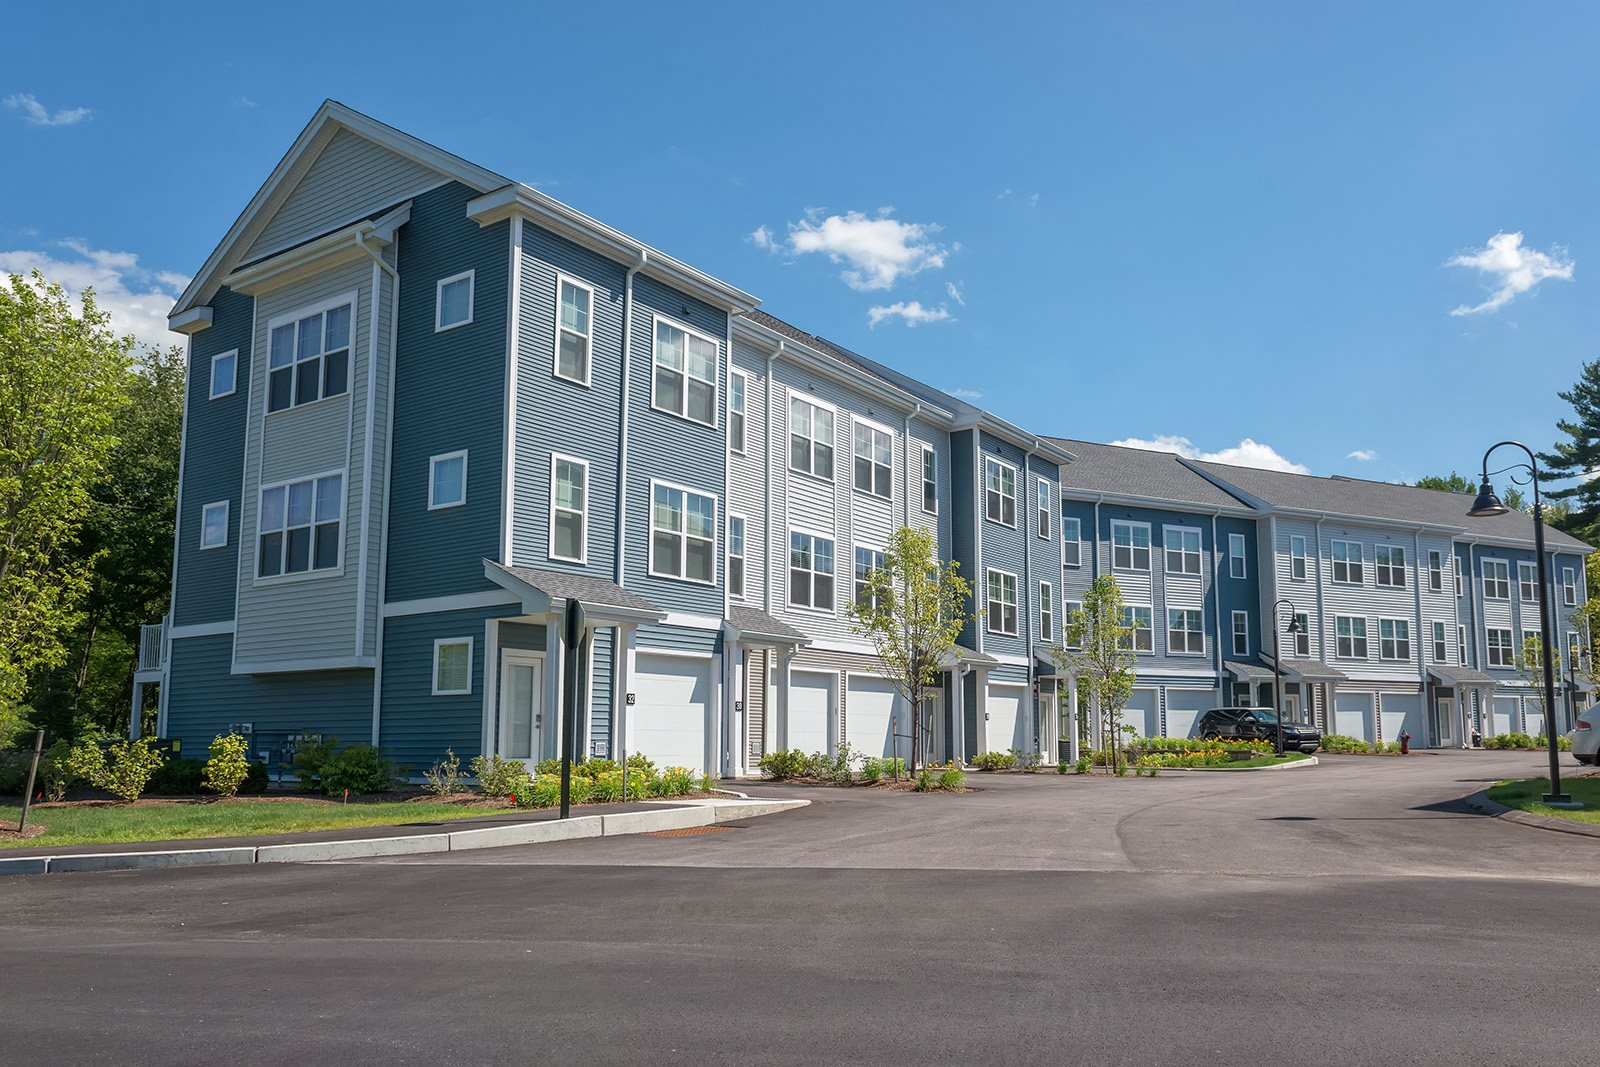 Building Exterior at Hopkinton by Windsor, MA